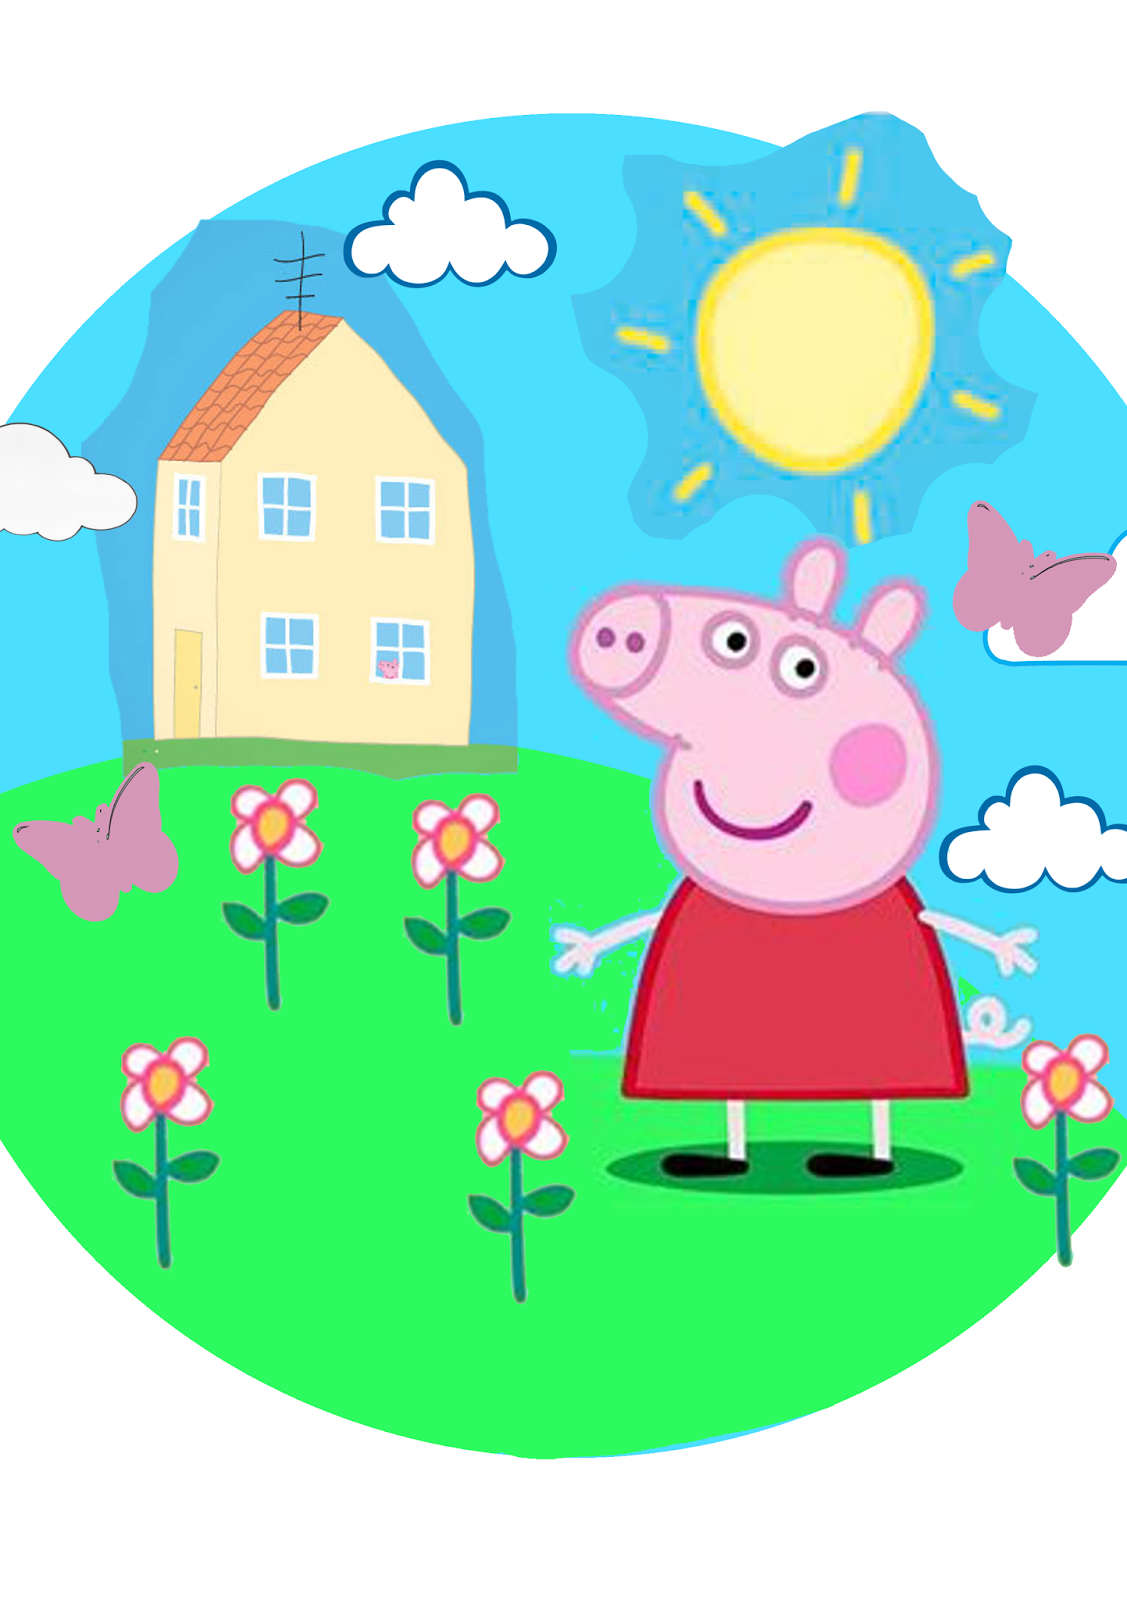 Peppa pig cake template free 28 images peppa pig for Peppa pig cake template free